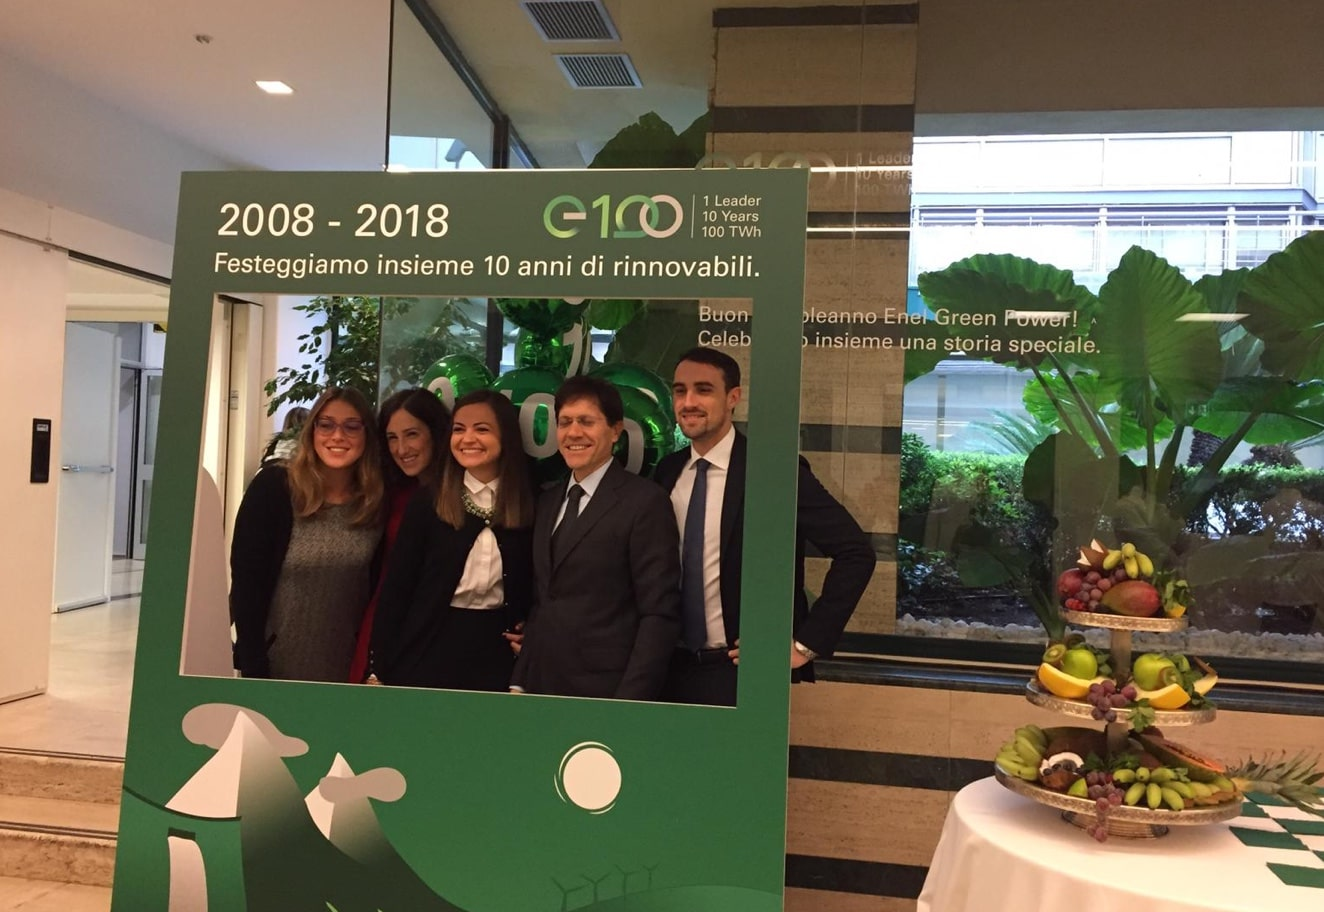 Corporate event management for 10-year Enel Green Power - Luther Dsgn